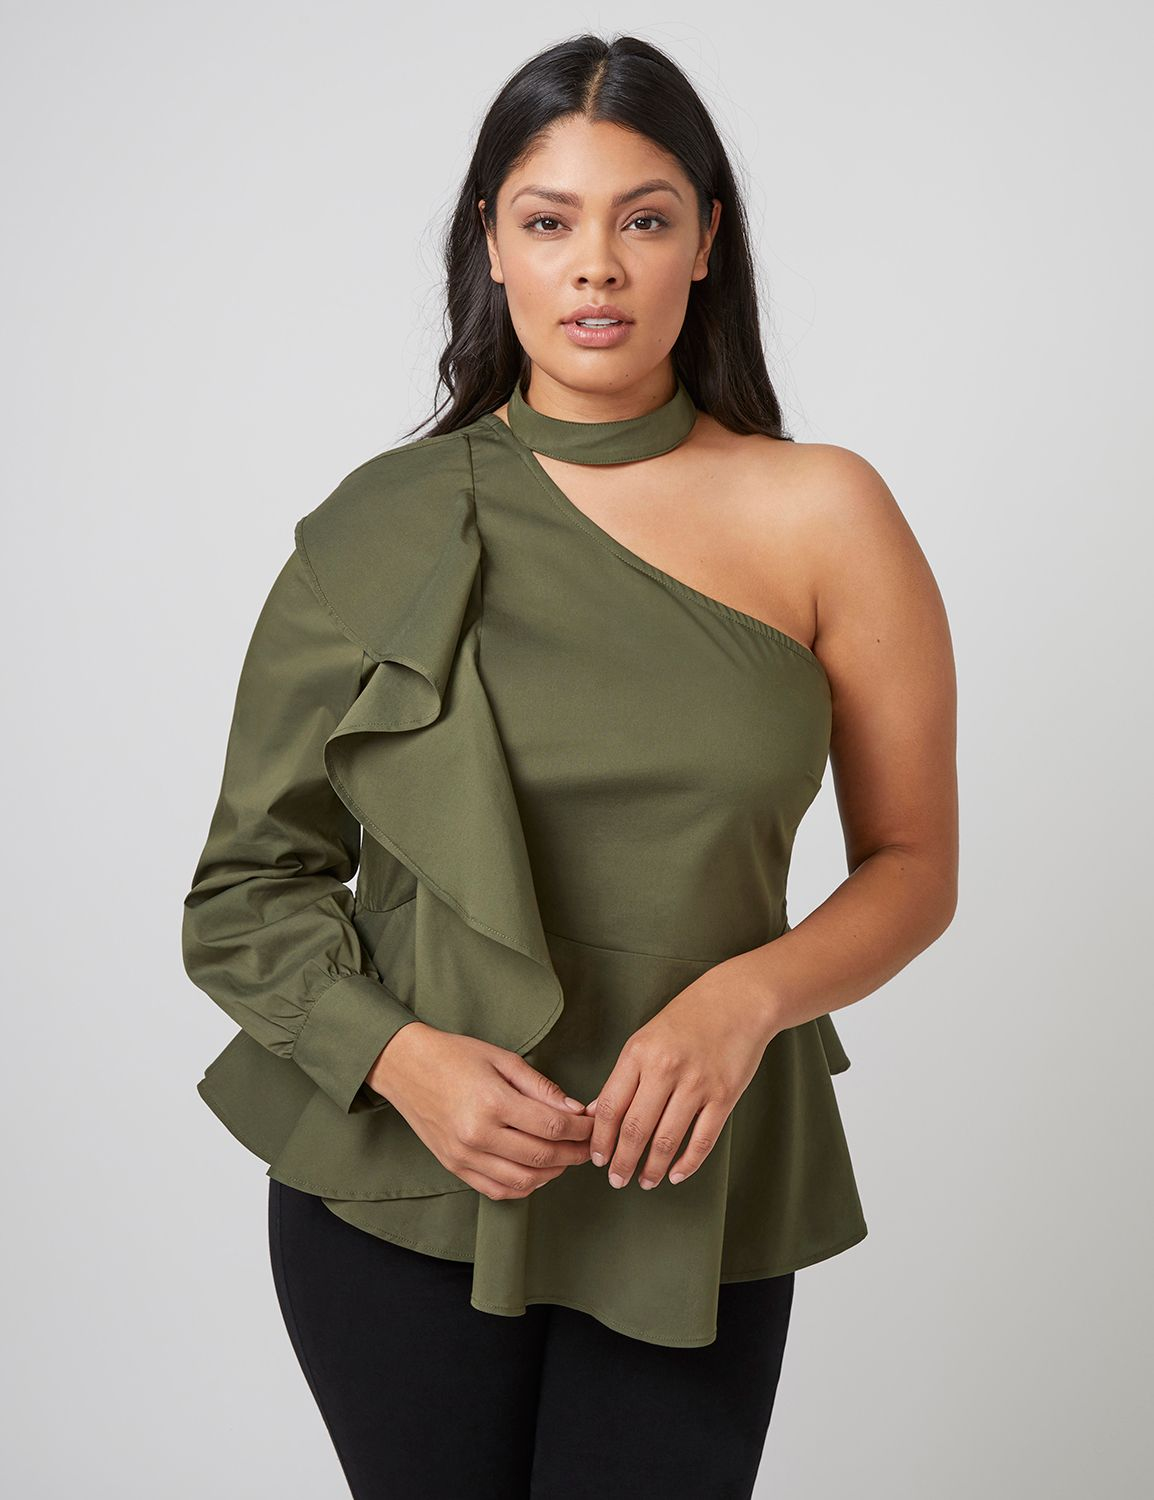 Lane Bryant Women's Fast Lane One-Shoulder Choker-Neck Peplum Blouse 28 Utility Green